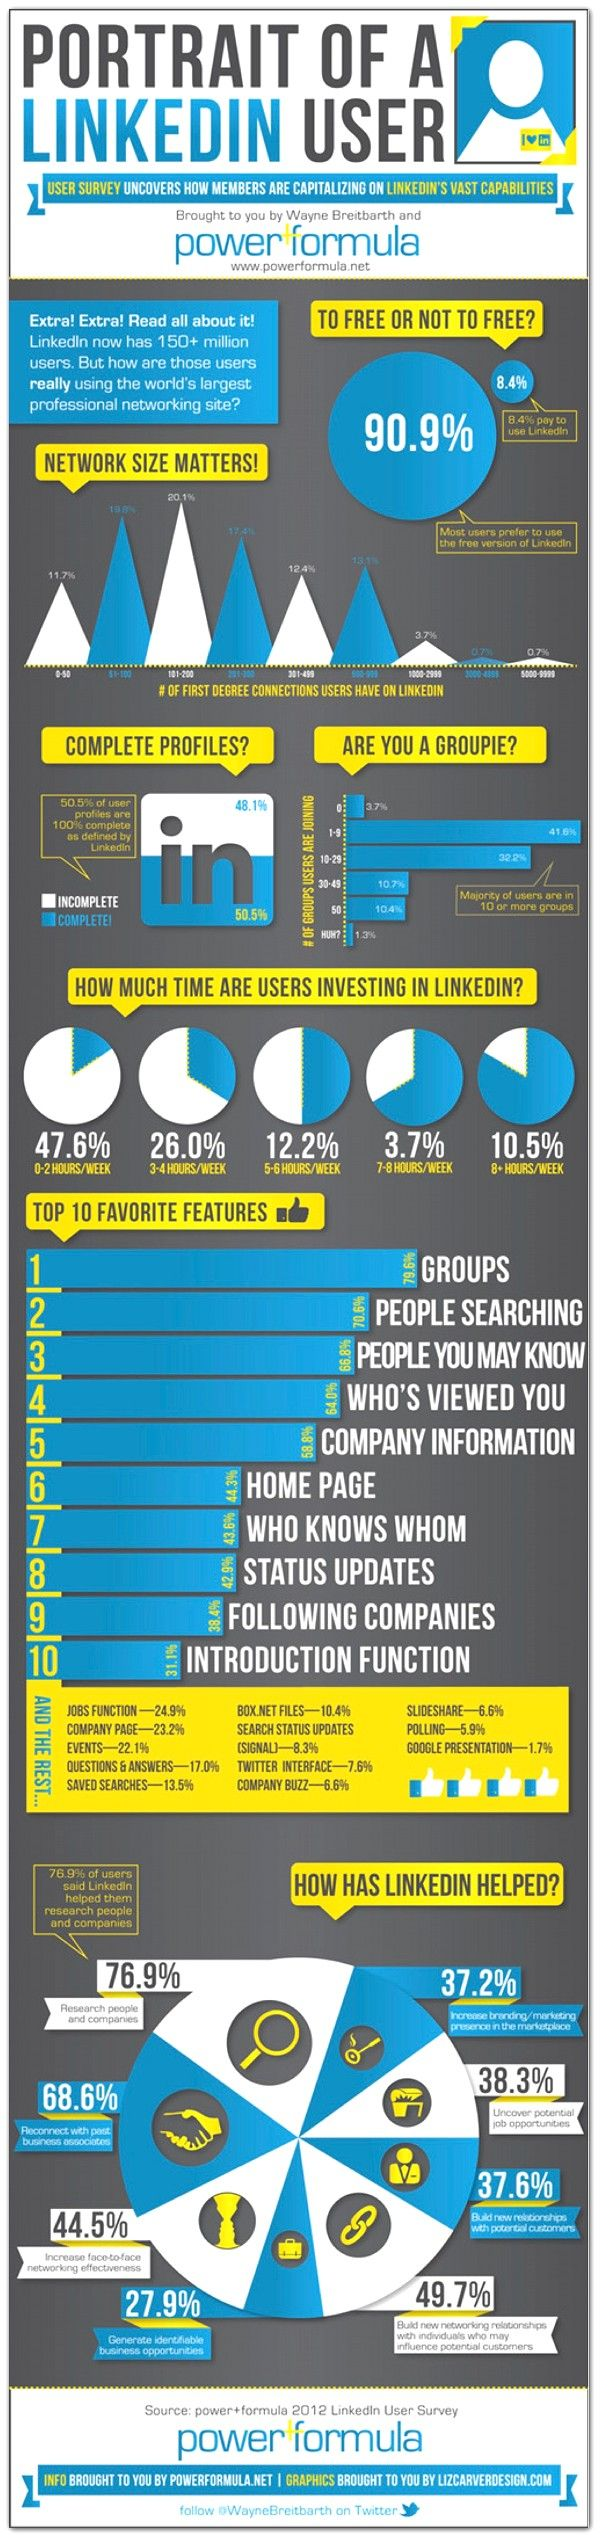 Portrait of a LinkedIn User: How People Are Using LinkedIn - Infographic from Wayne Breitbarth, UW-Whitewater alum!